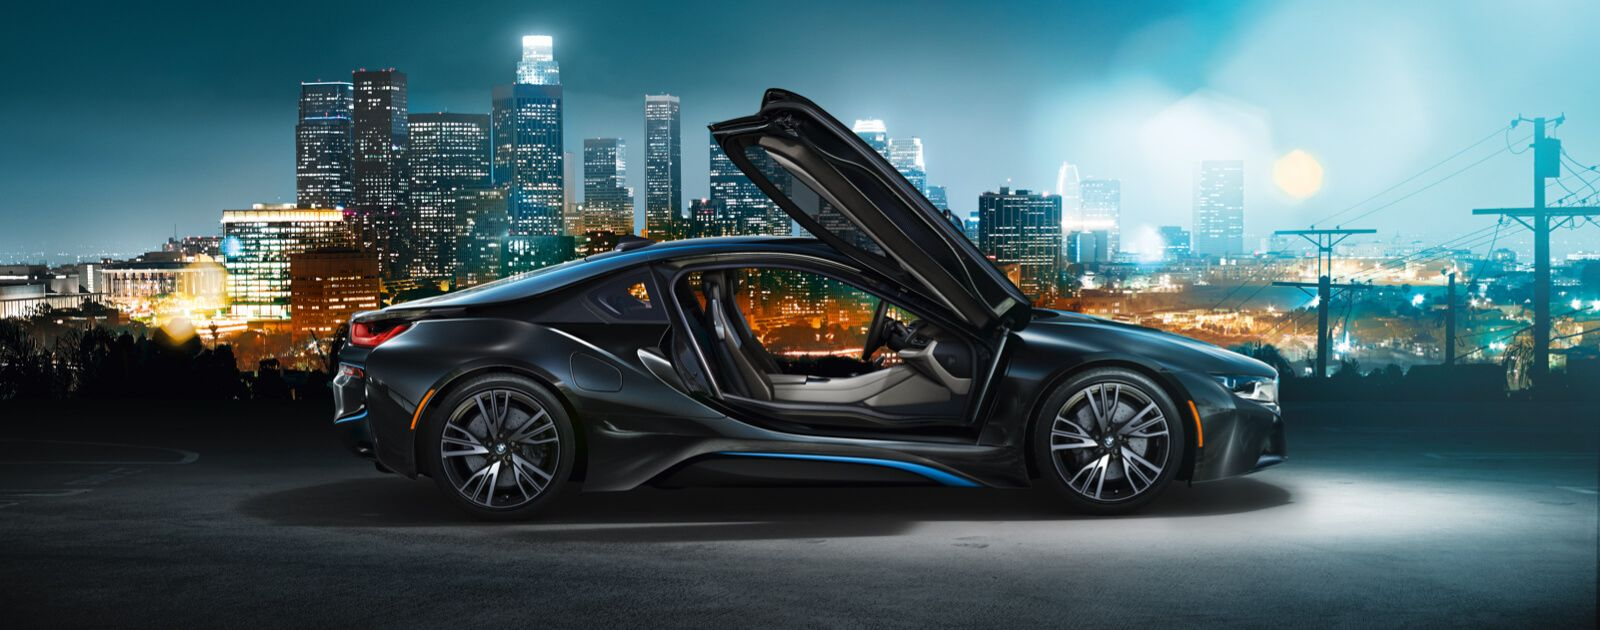 BMW I8 Living For This Car Like Obsessed 3 Get It In A White Beigish Creme Color Or Silvery Gold Type Metal Flake Sparkle Crystal